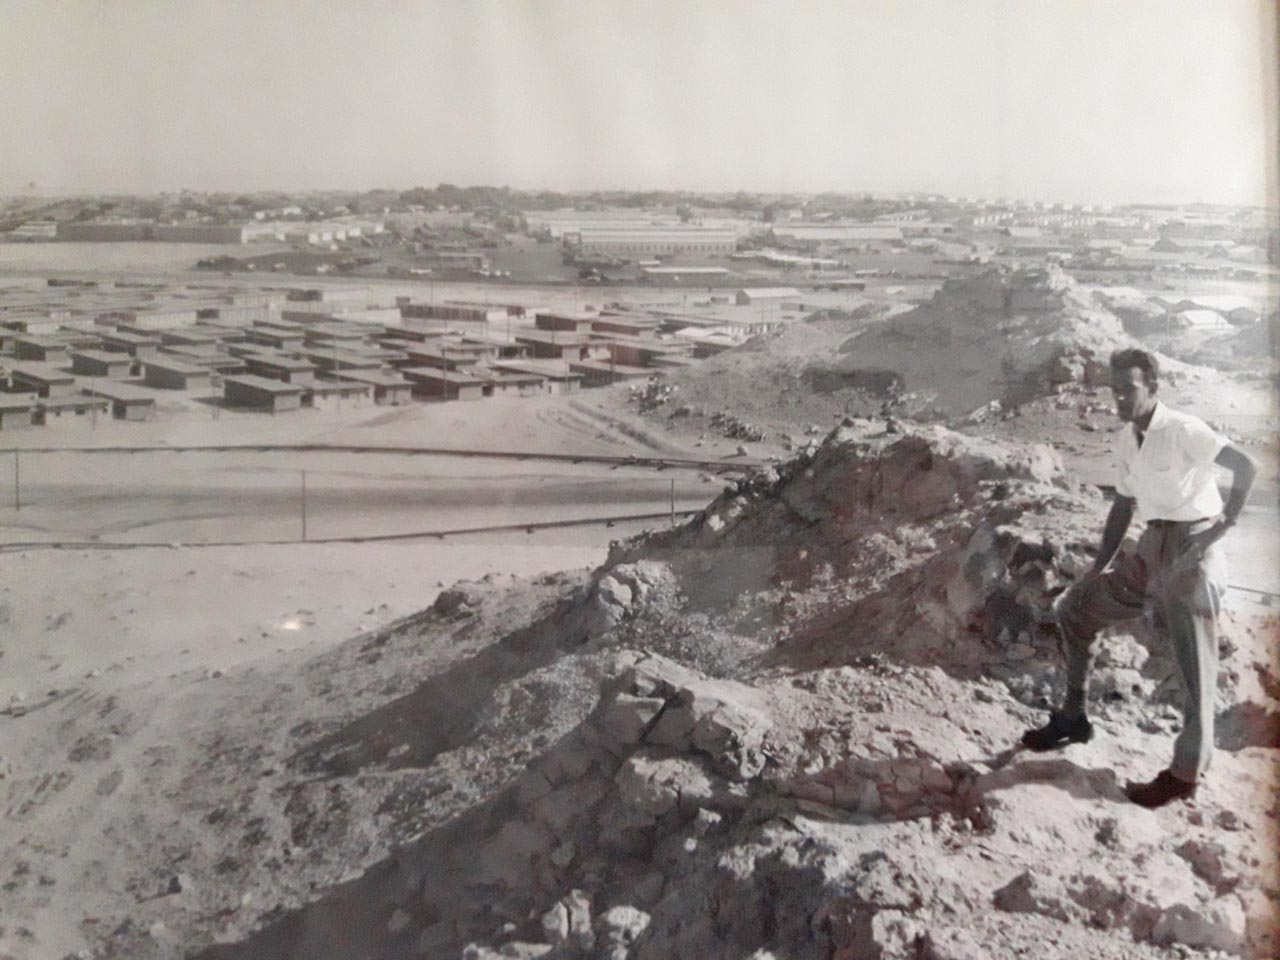 Willy Timmermans,  employee no. 175009, overlooking Dhahran in spring 1953.